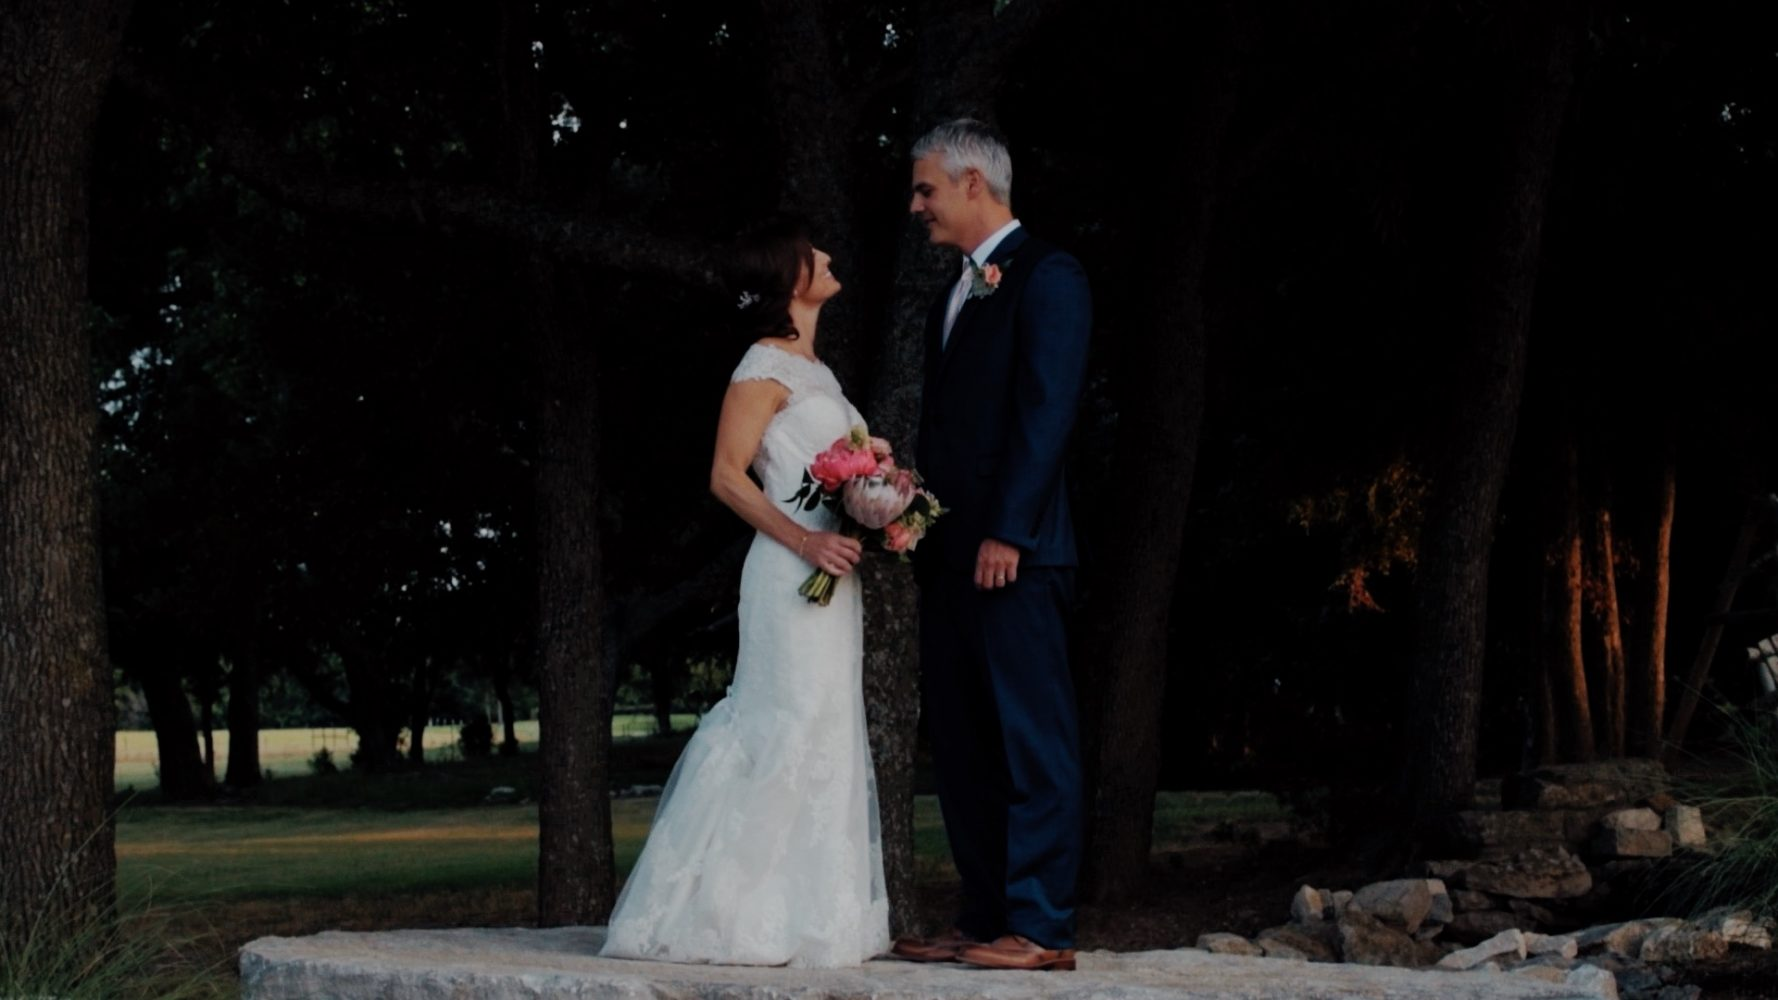 Melissa + Justin | Fort Worth, Texas | The Brooks at Weatherford